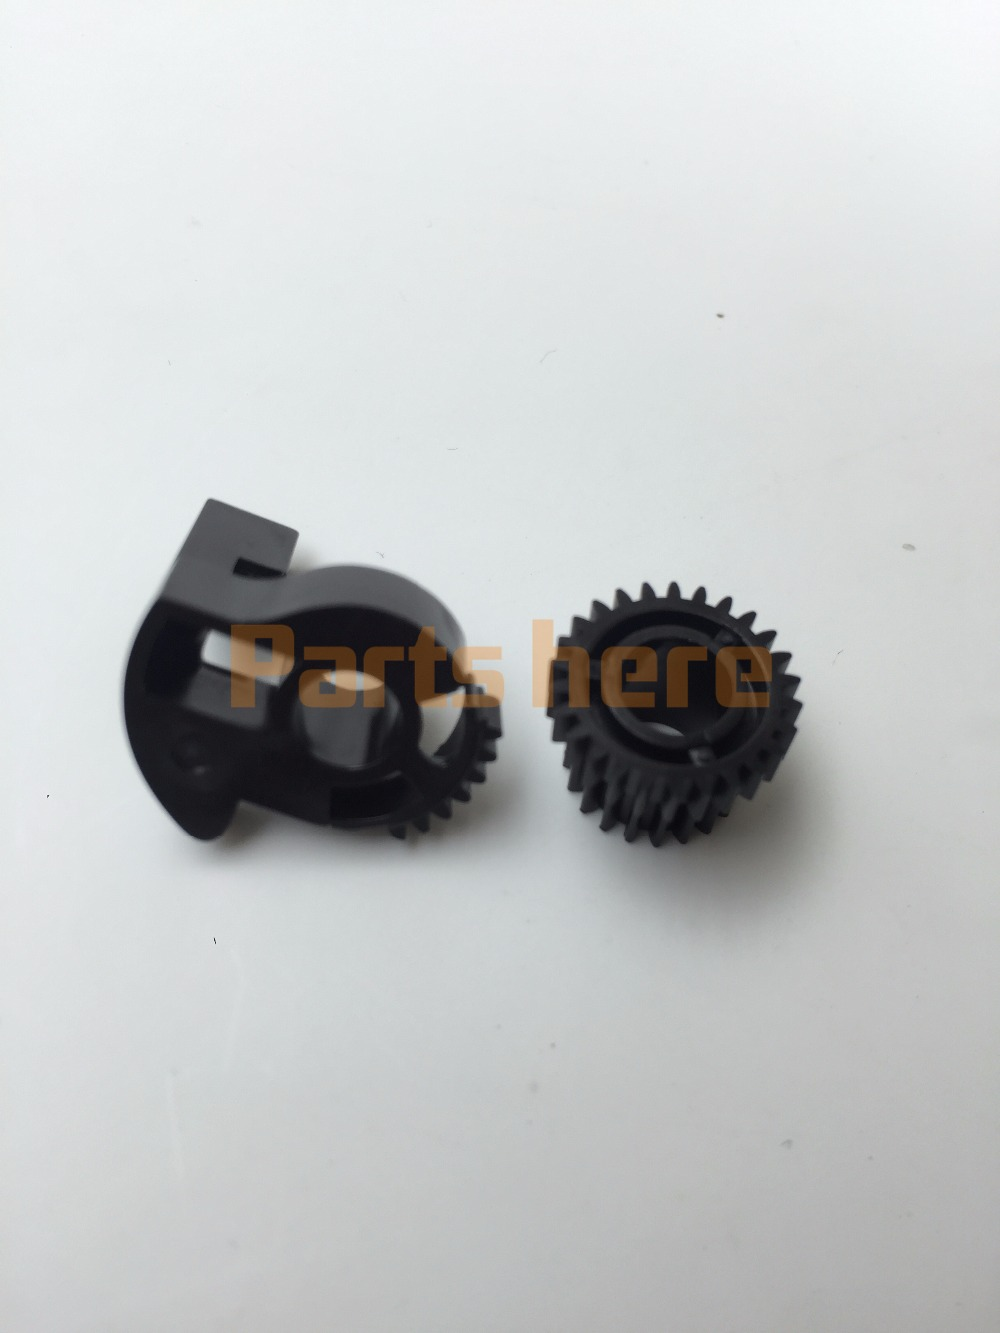 TN330 TN360 TN2110 TN2120 Reset lever flag gear for Brother HL 2140 2150 2170 DCP 7030 7045 MFC 7320 7440 7840 for Ricoh